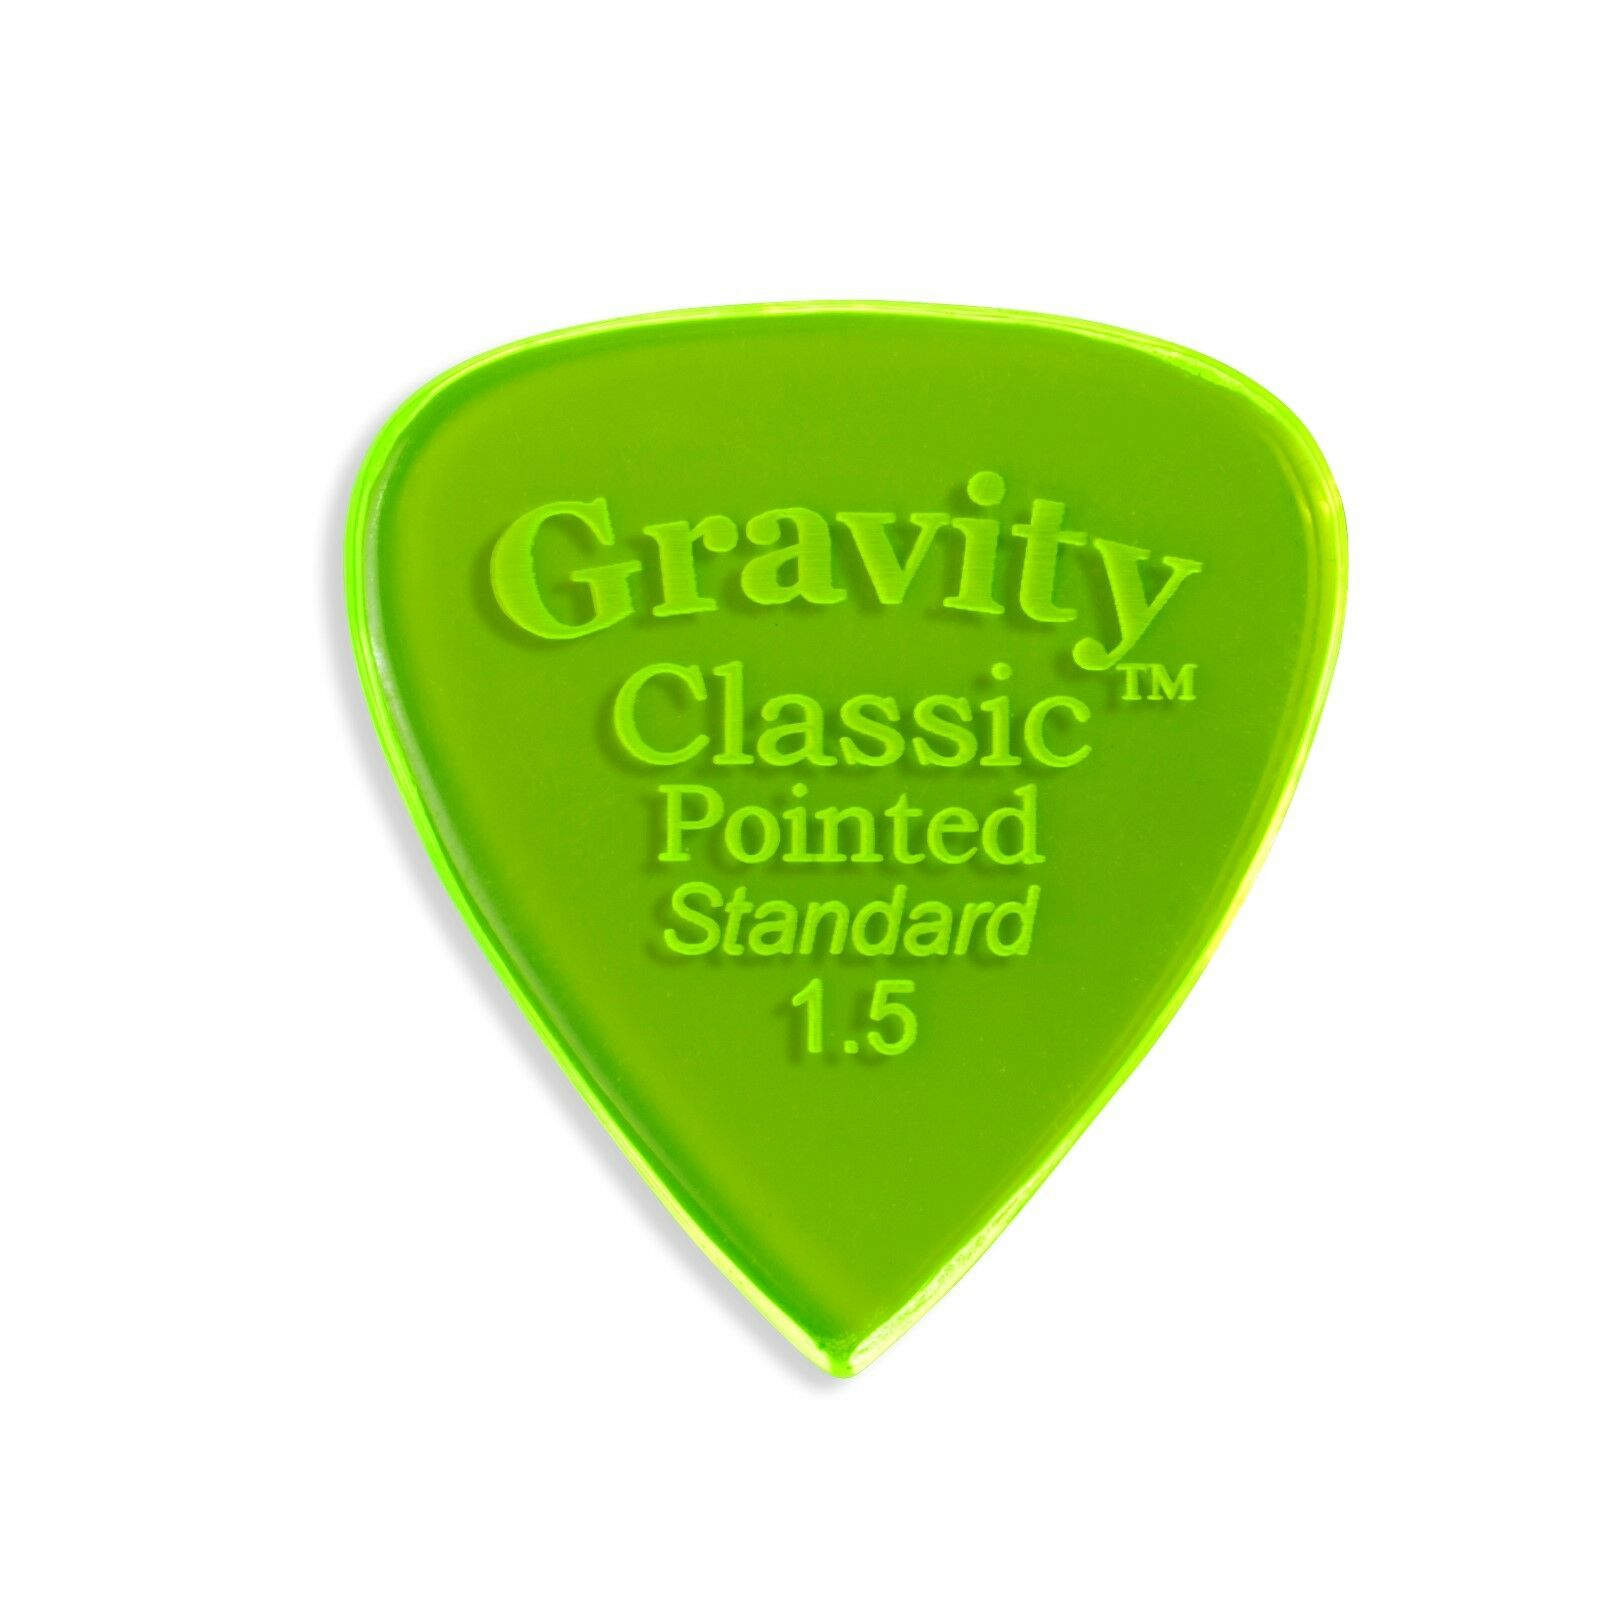 Gravity Pick - Classic Classic Classic Pointed 1.5mm Standard Polished - Lot of TEN picks 83a137